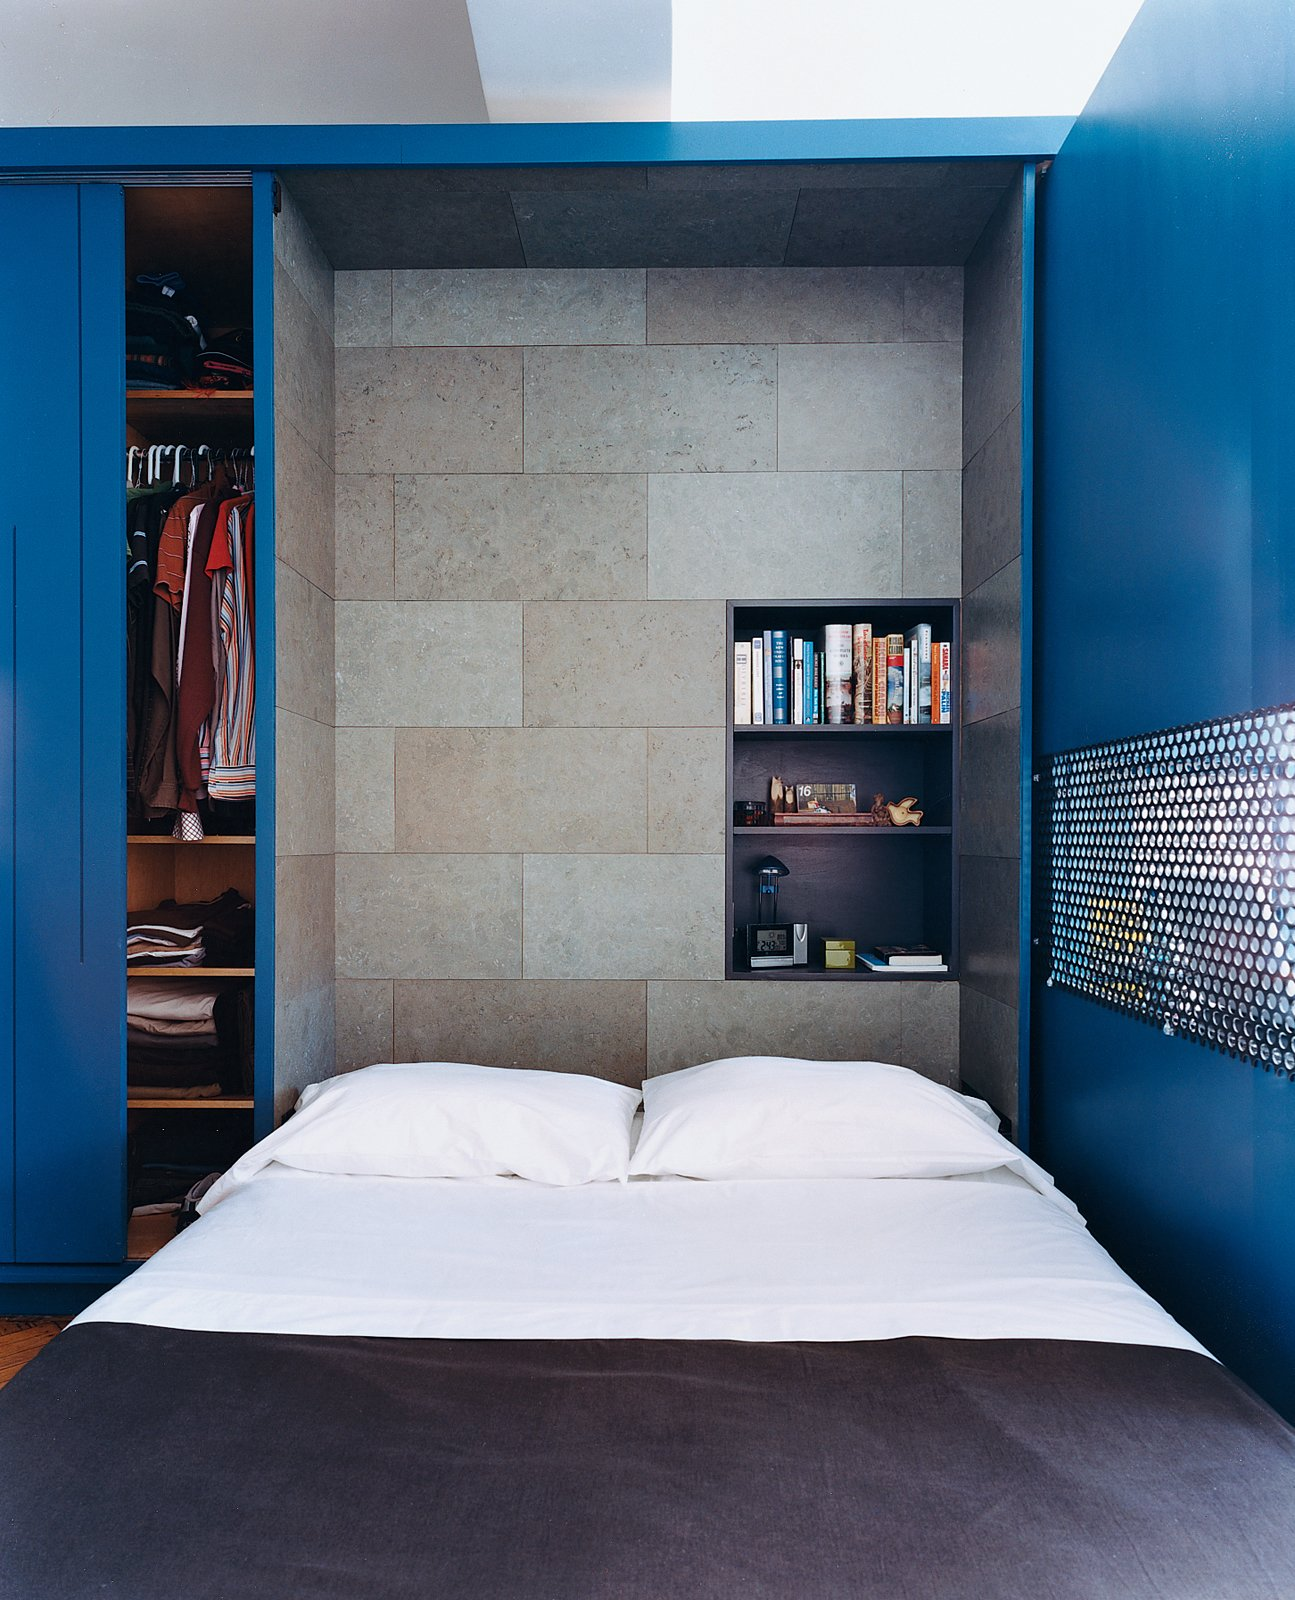 Bedroom The interior of the Murphy bed compartment is lined with a stained cork panel and contains a smaller shelving unit for bedside reading, alarm clock, and reading lamp.  Bedrooms by Dwell